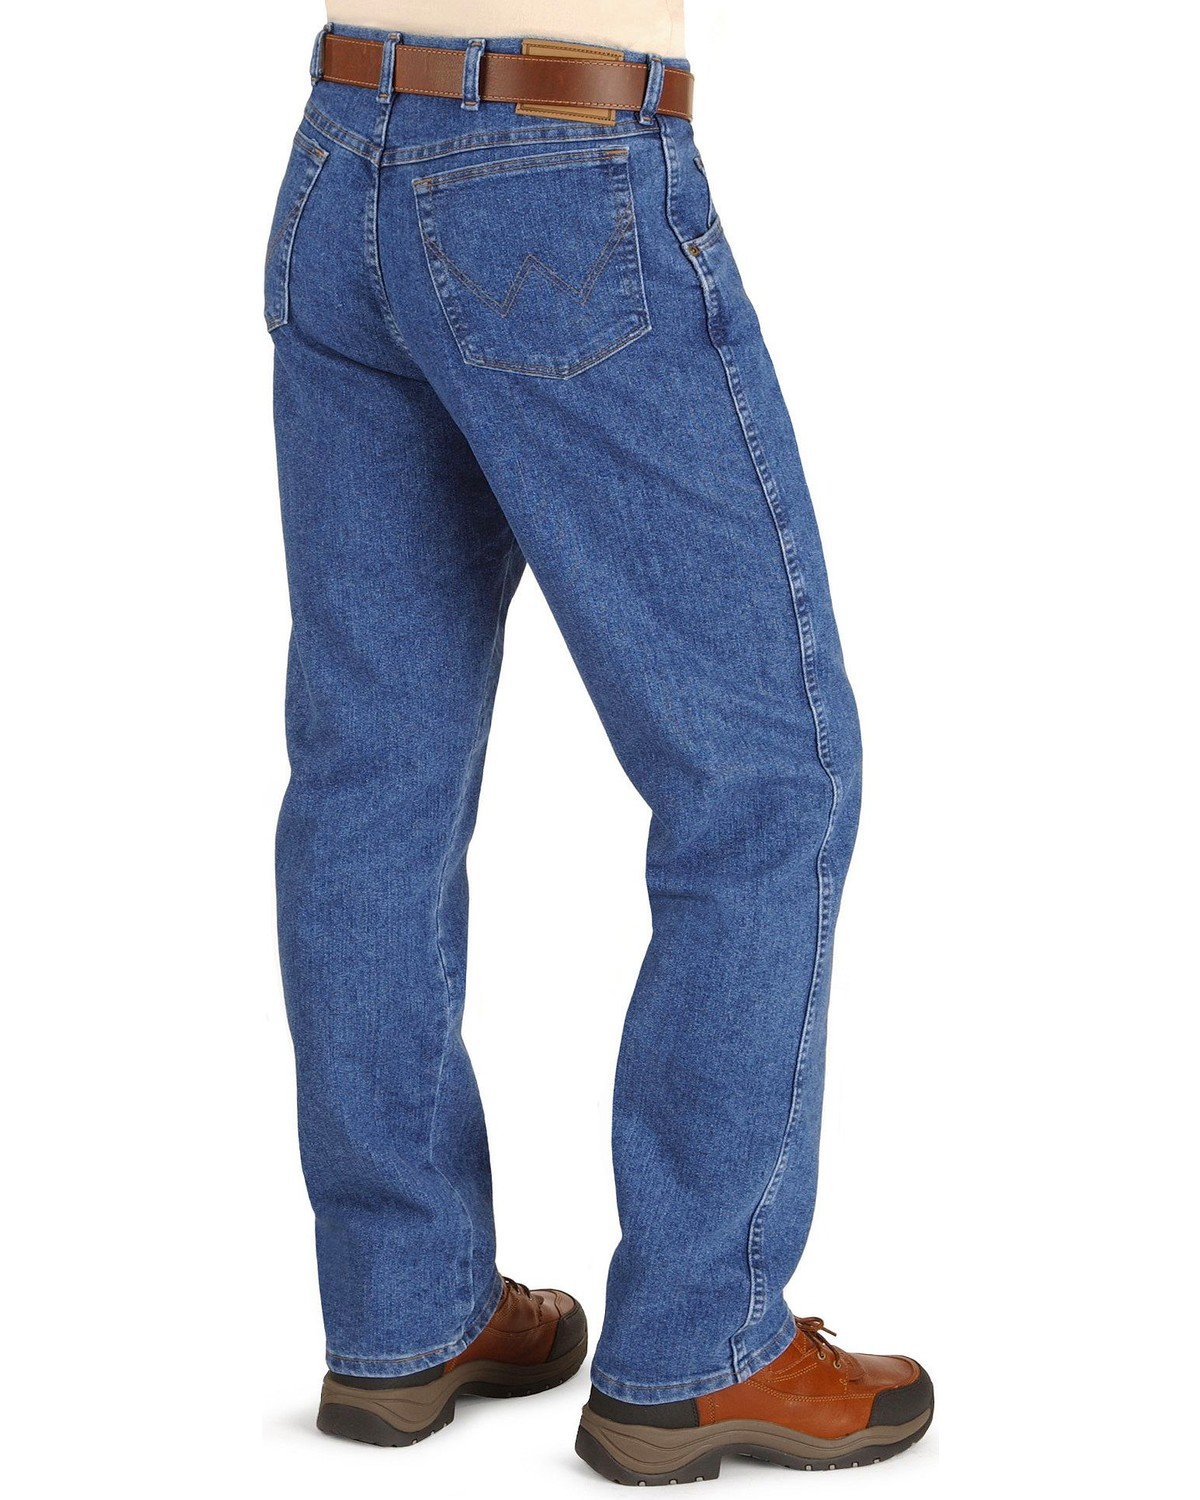 5bcbaccd Zoomed Image Wrangler Men's Rugged Wear Stretch Jeans, Stonewash, ...